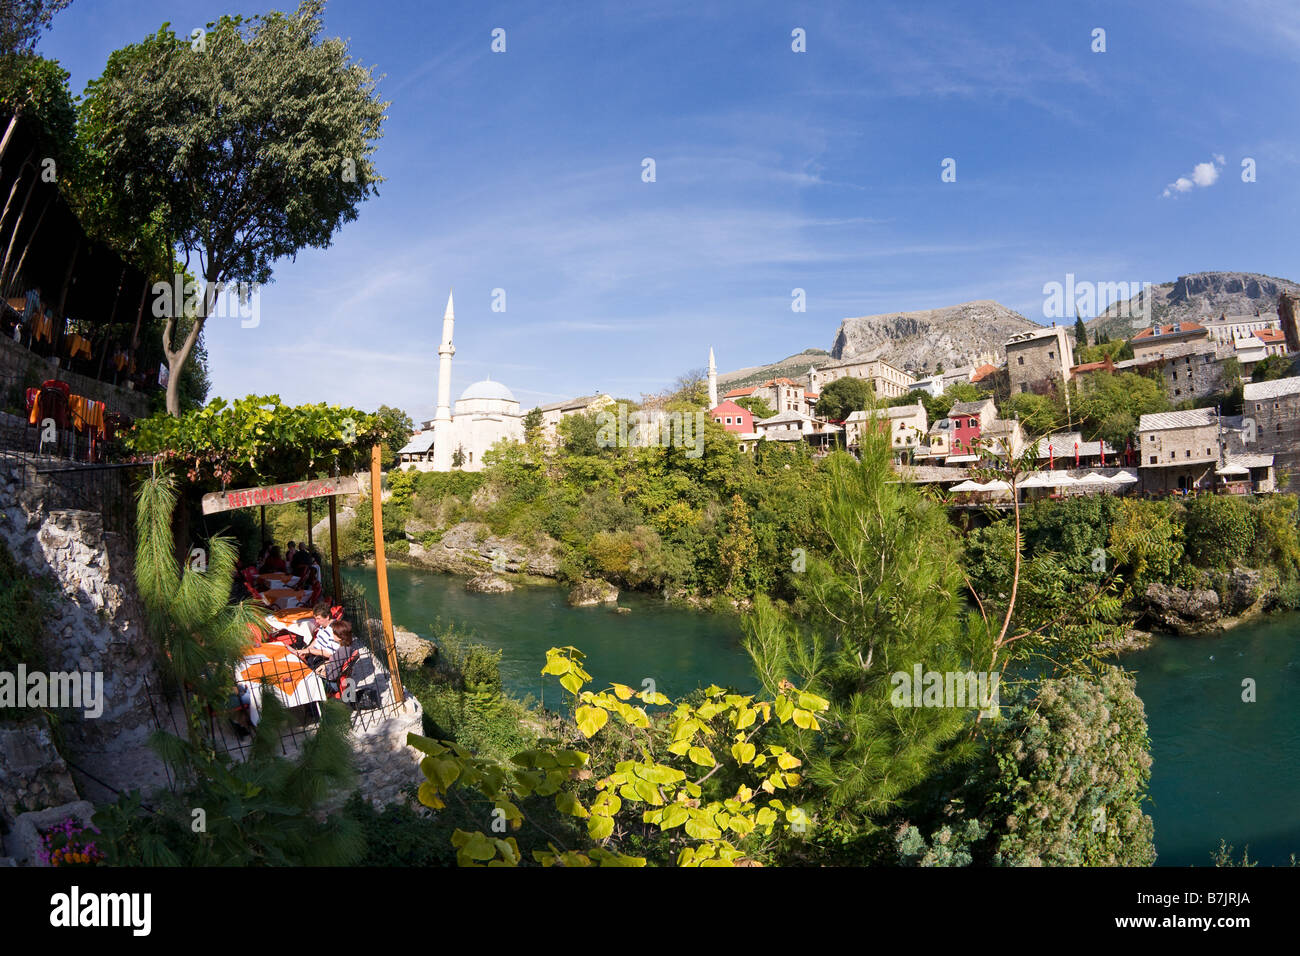 Historic Old Town of Mostar and the Neretva River in Bosnia Herzegovina Europe - Stock Image